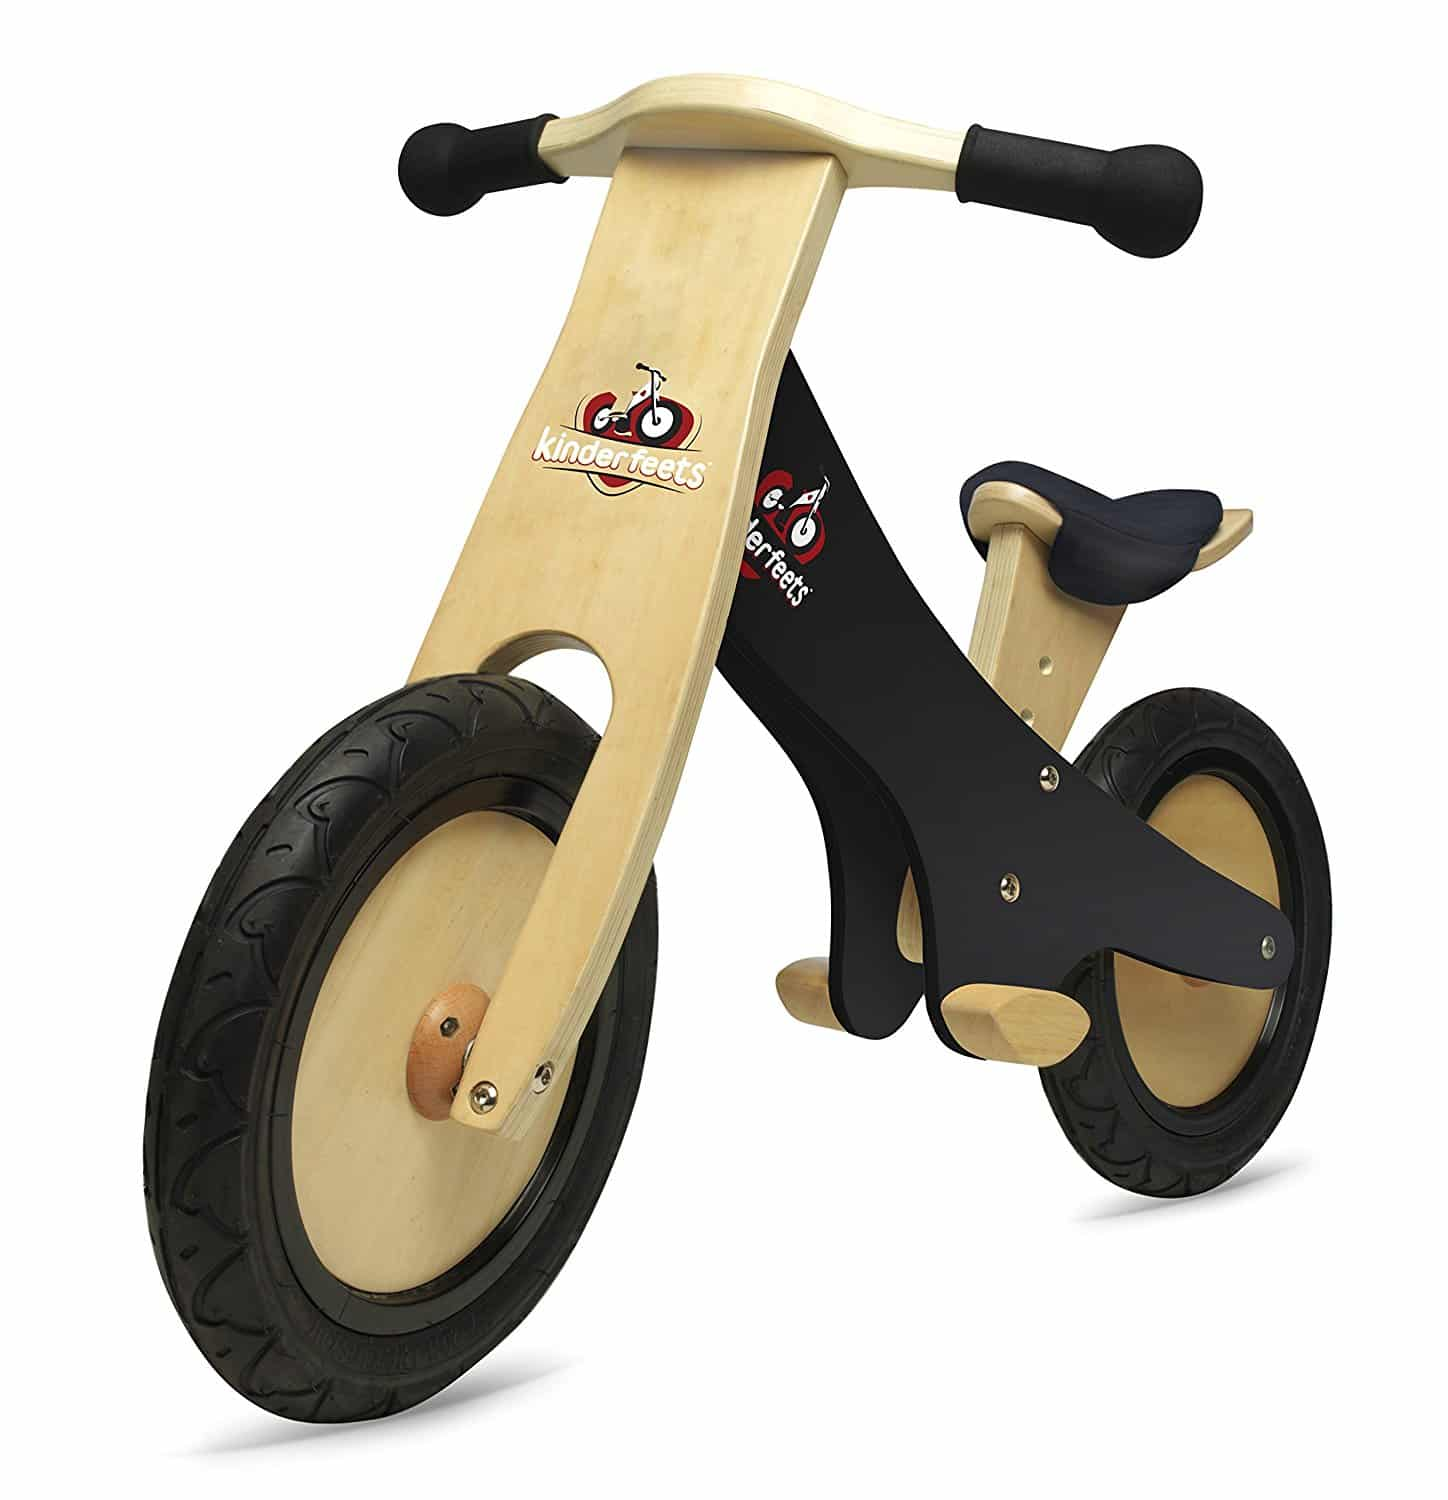 12 best balance bikes for kids and older children (updated 2019)